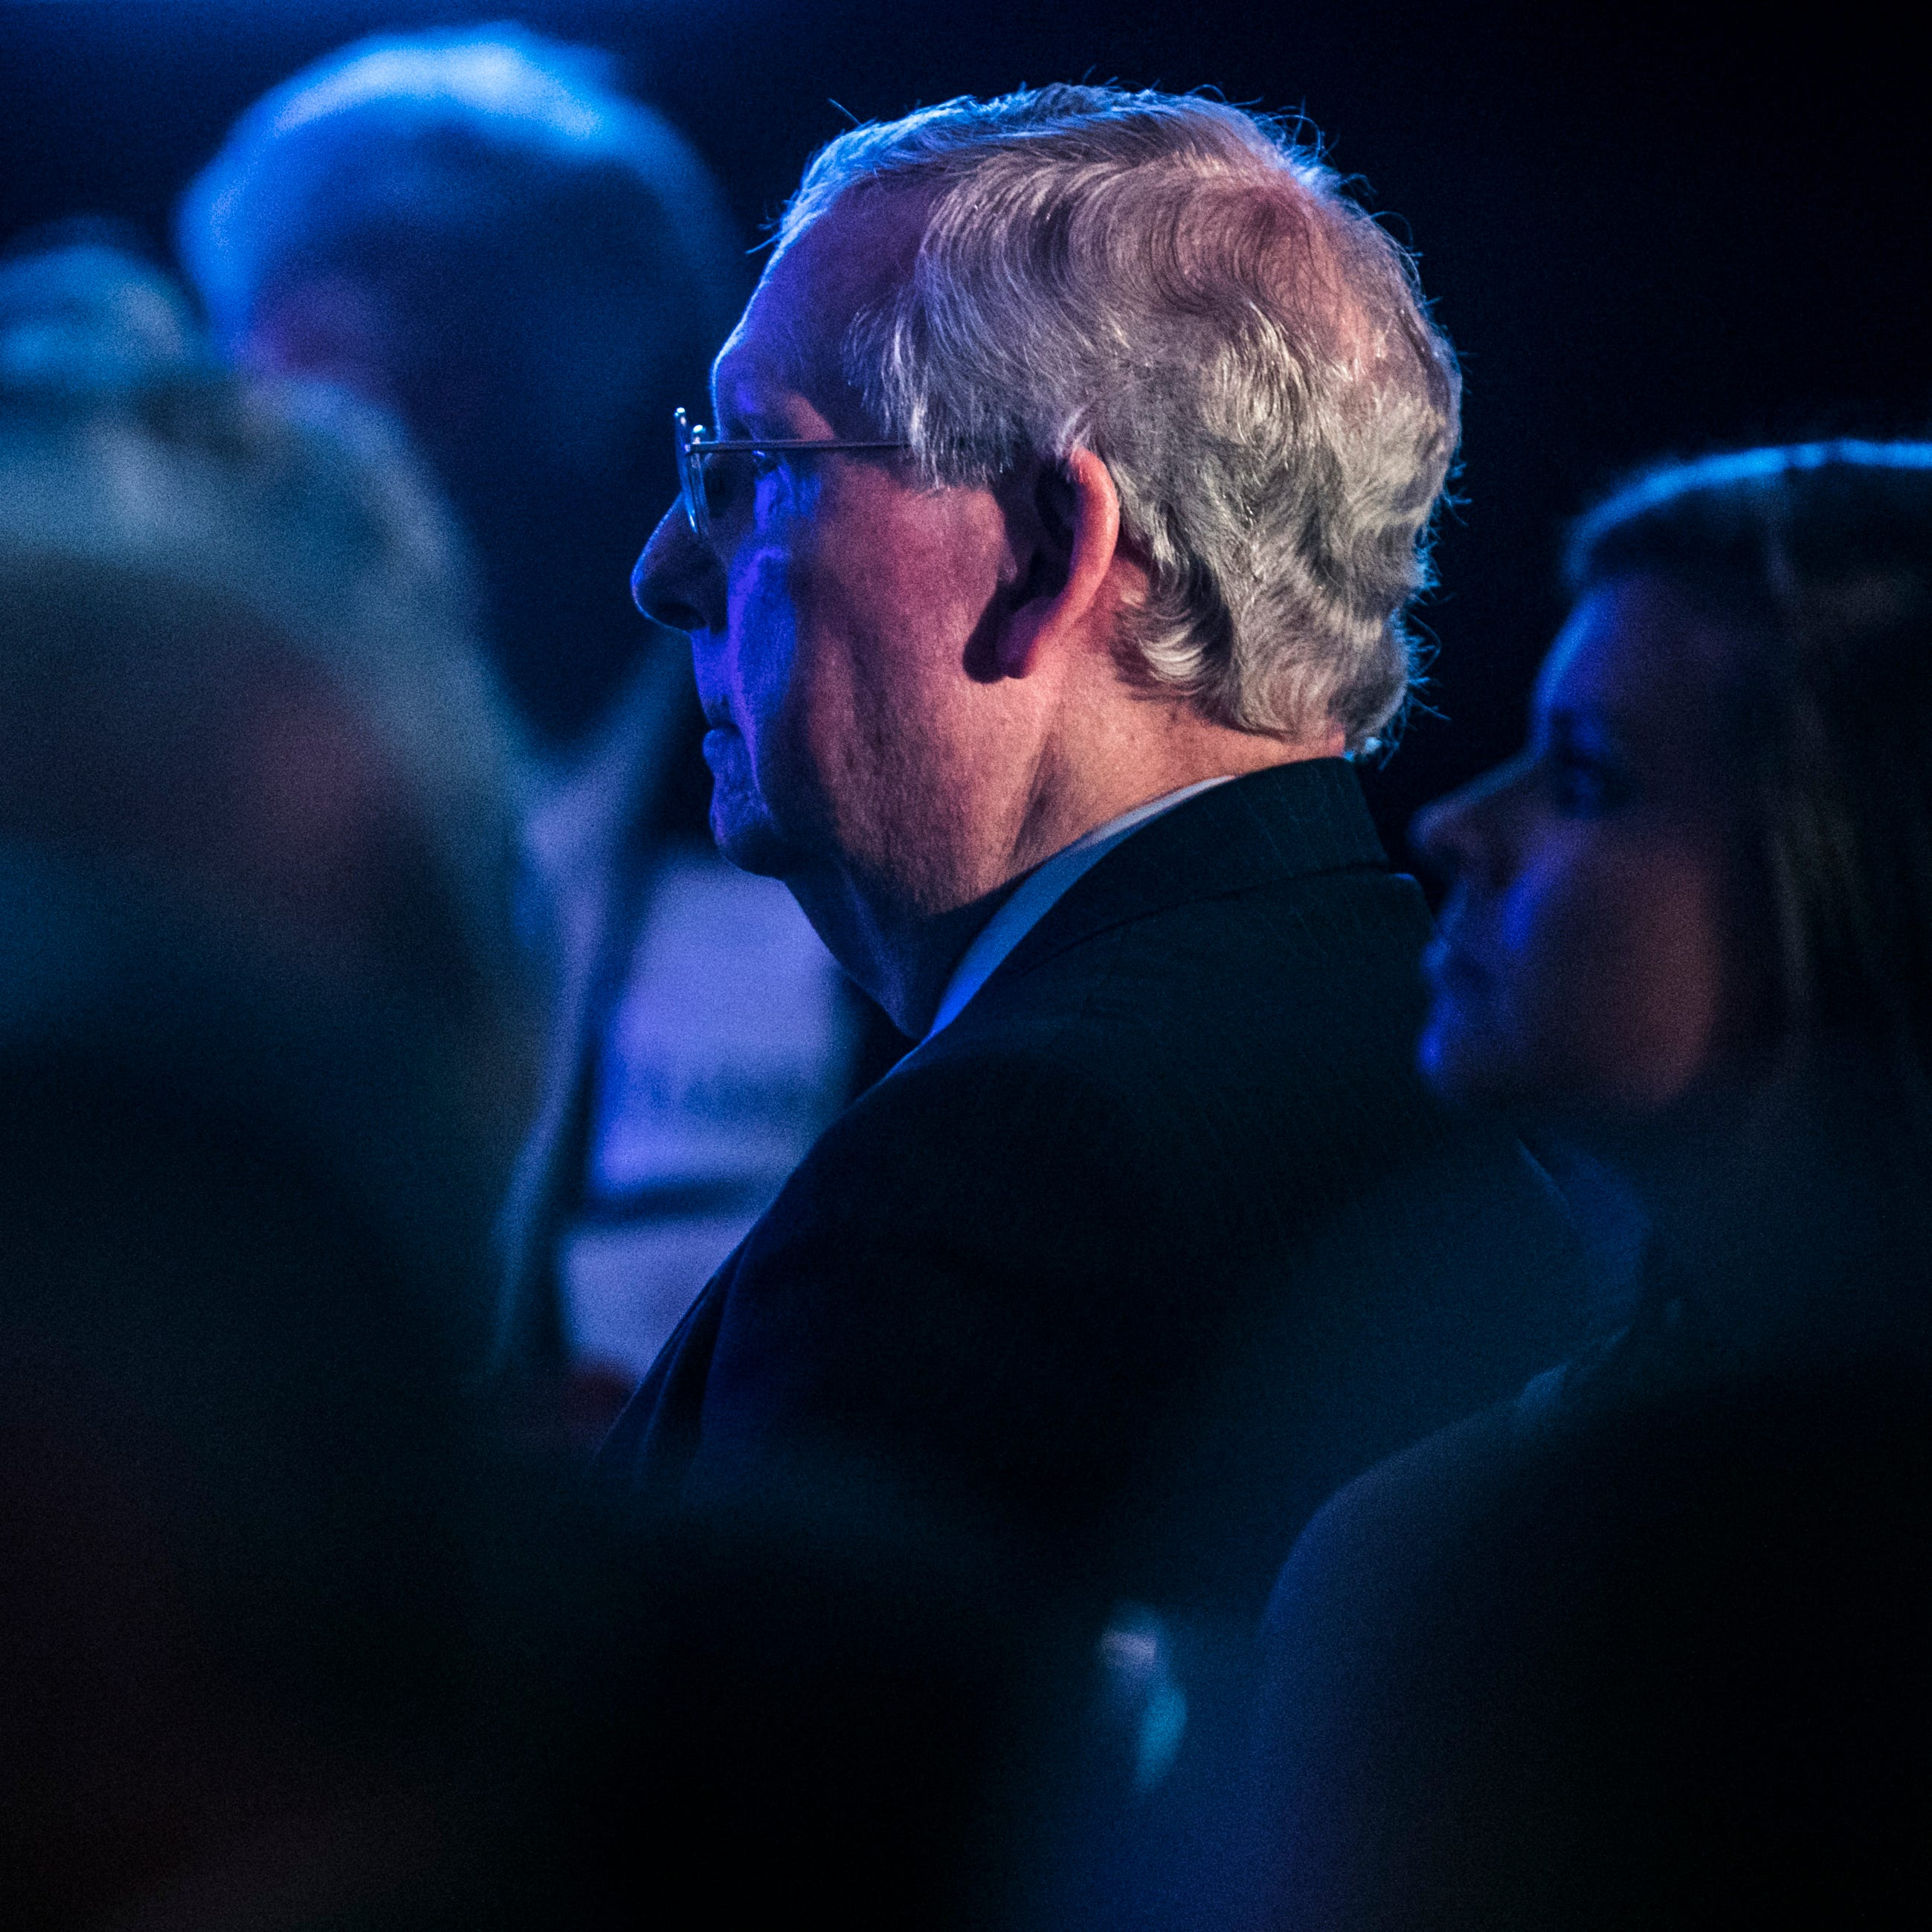 Sen. Mitch McConnell listens to Gov. Matt Bevin's speech at the dinner for Kentucky Republicans at the annual Lincoln Dinner in Lexington Saturday night. Aug. 25, 2018